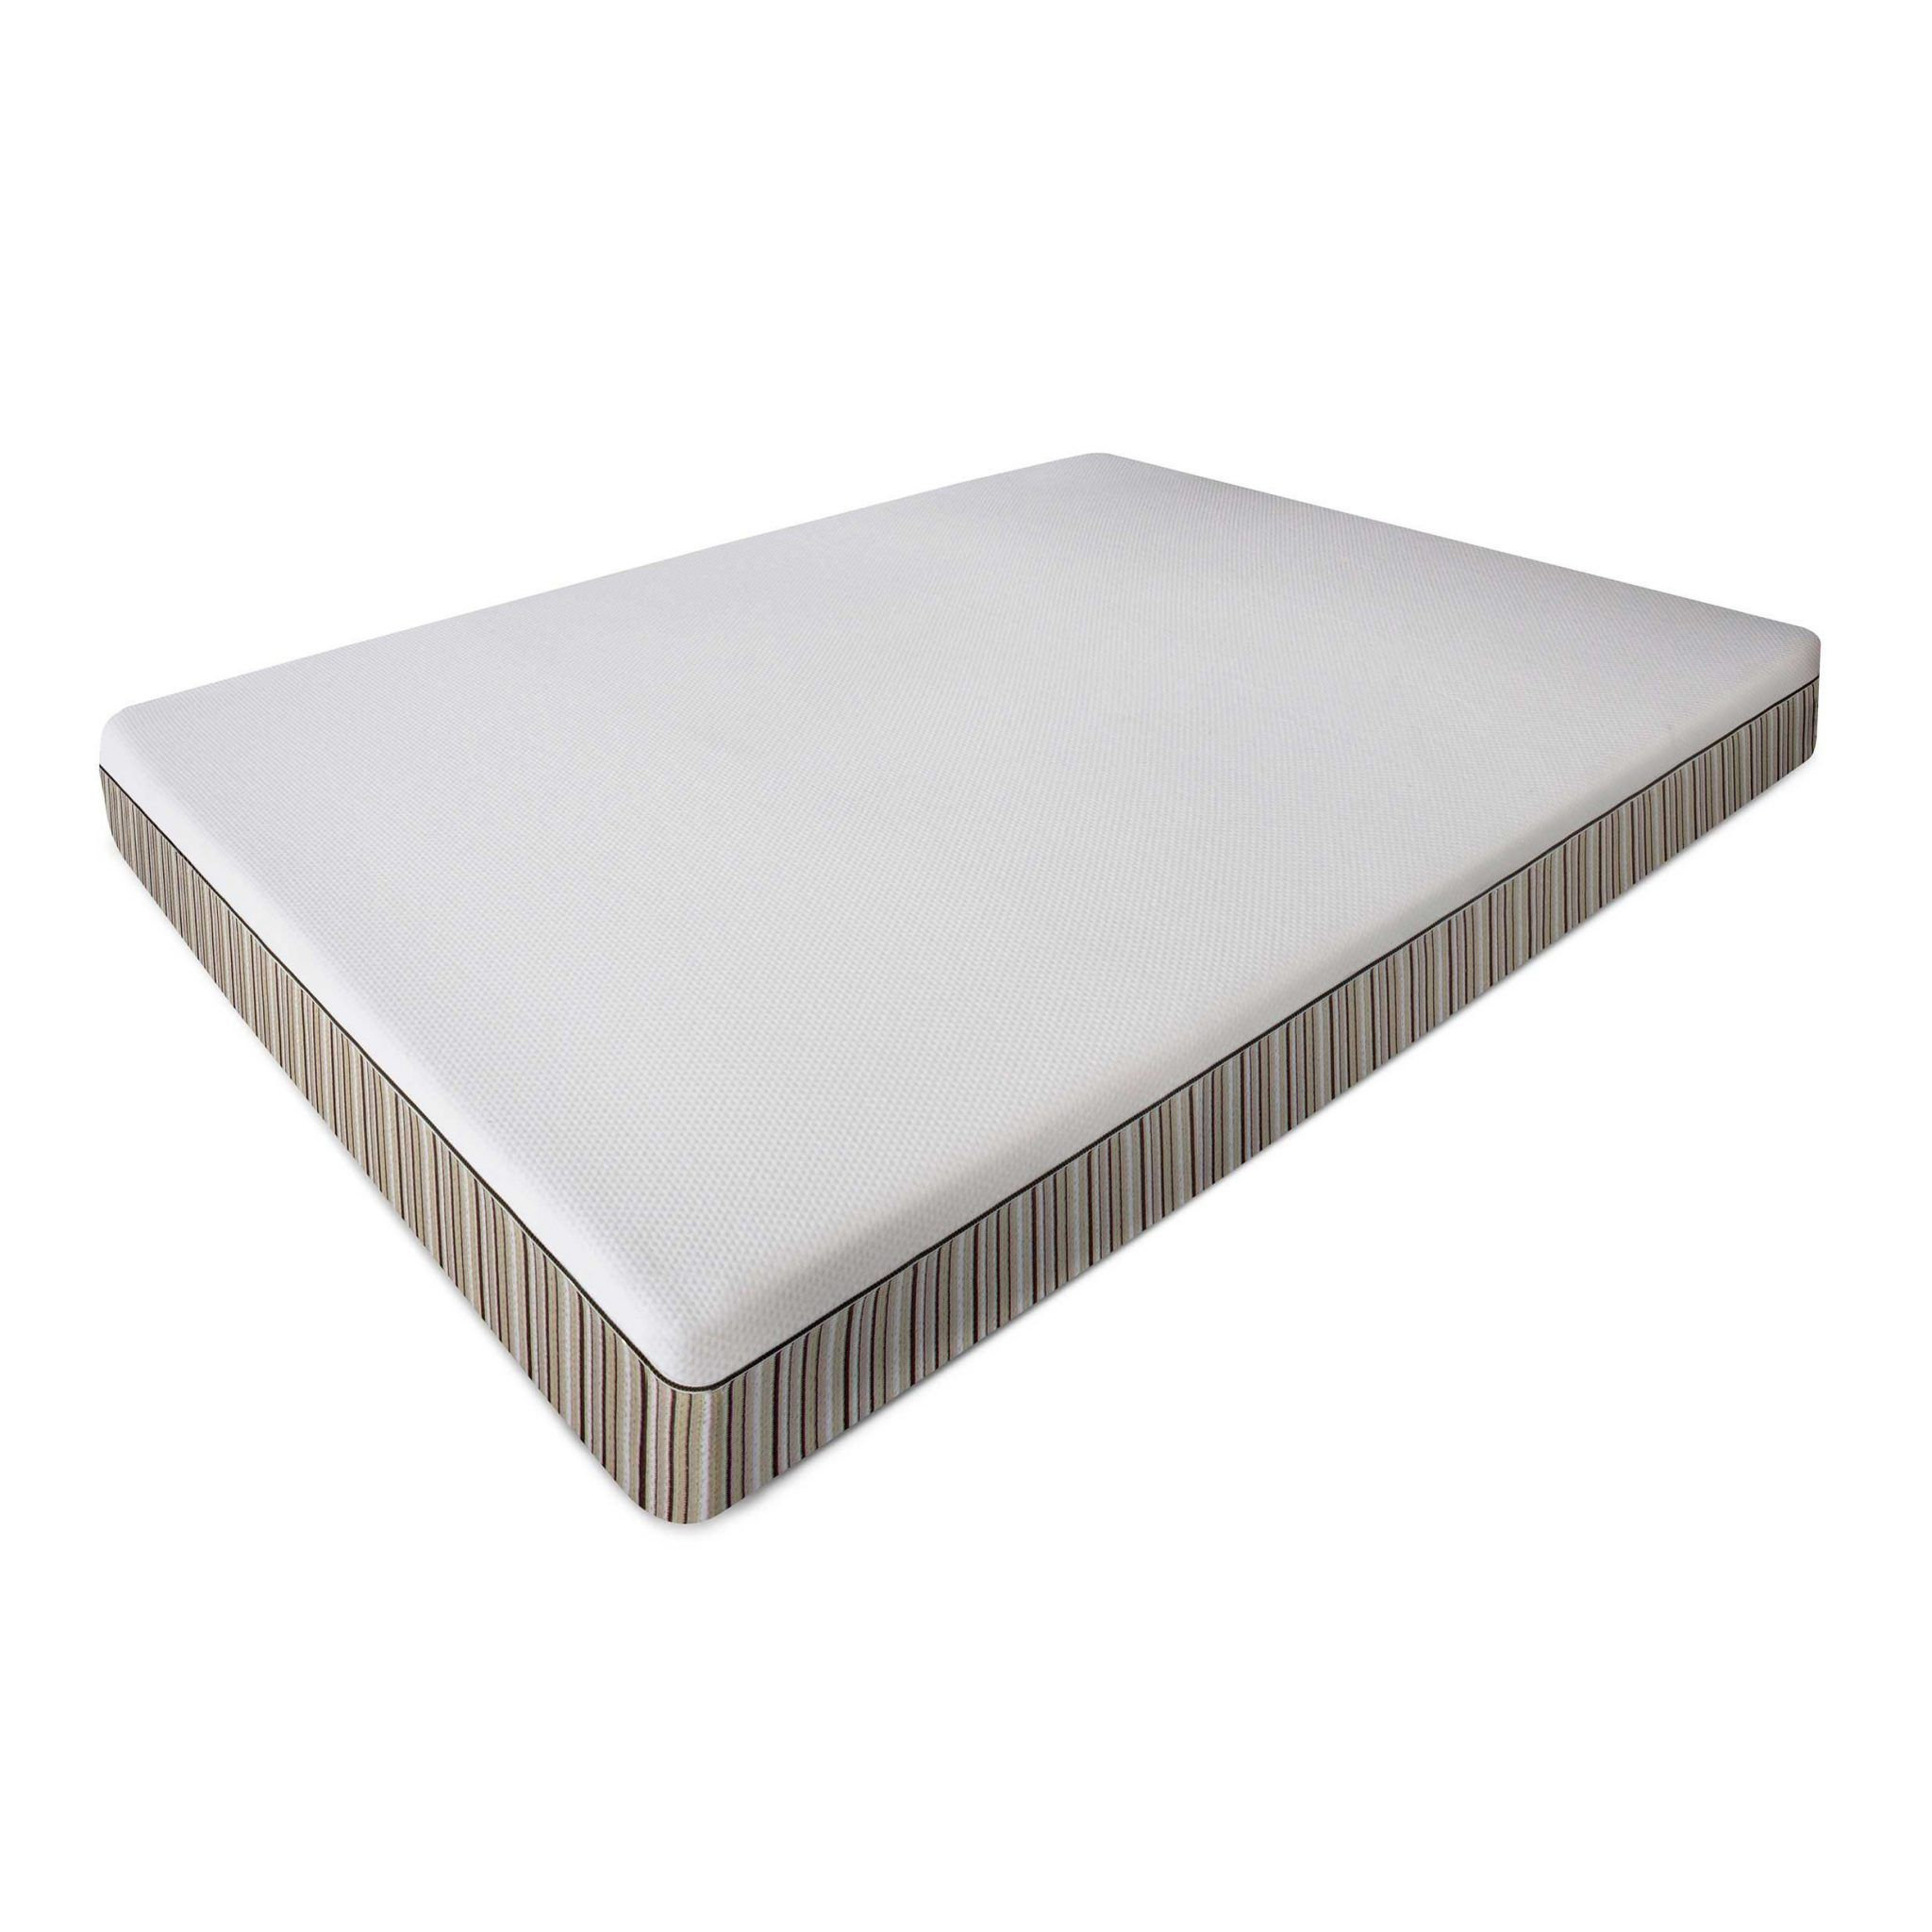 Home The Non Tox Shop Memory foam mattress, Mattress